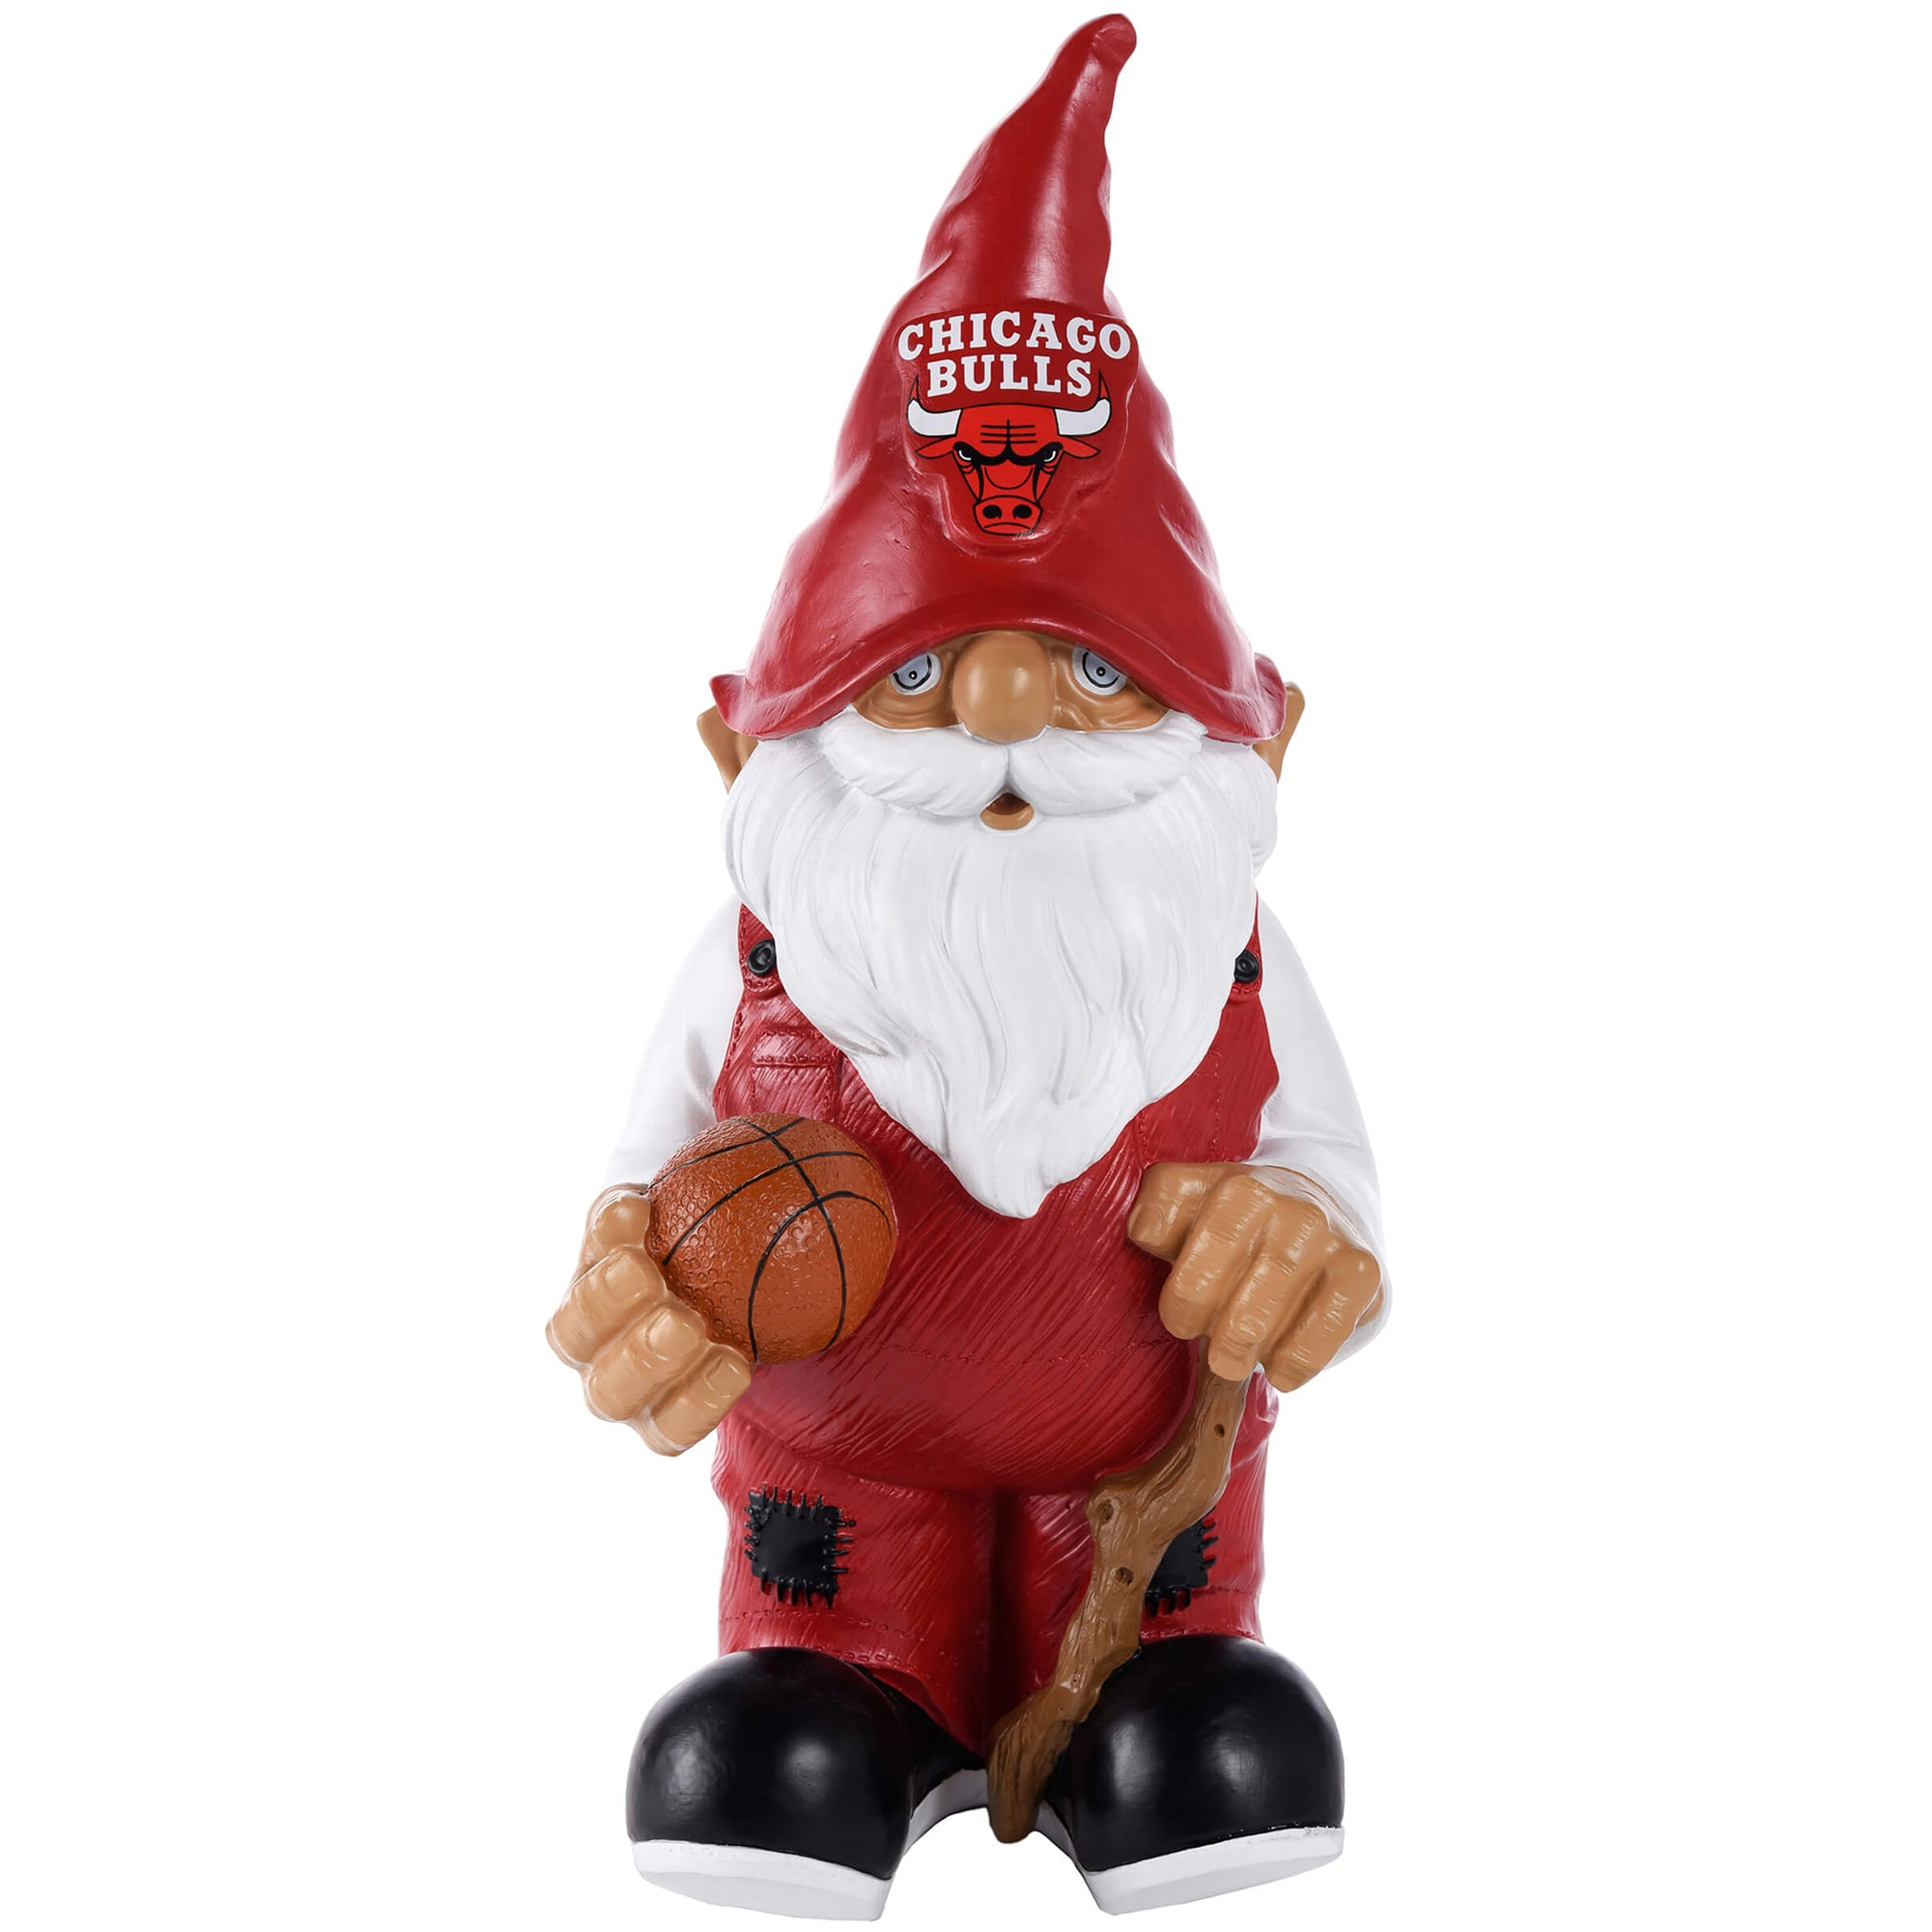 Chicago Bulls Decorative Team Gnome